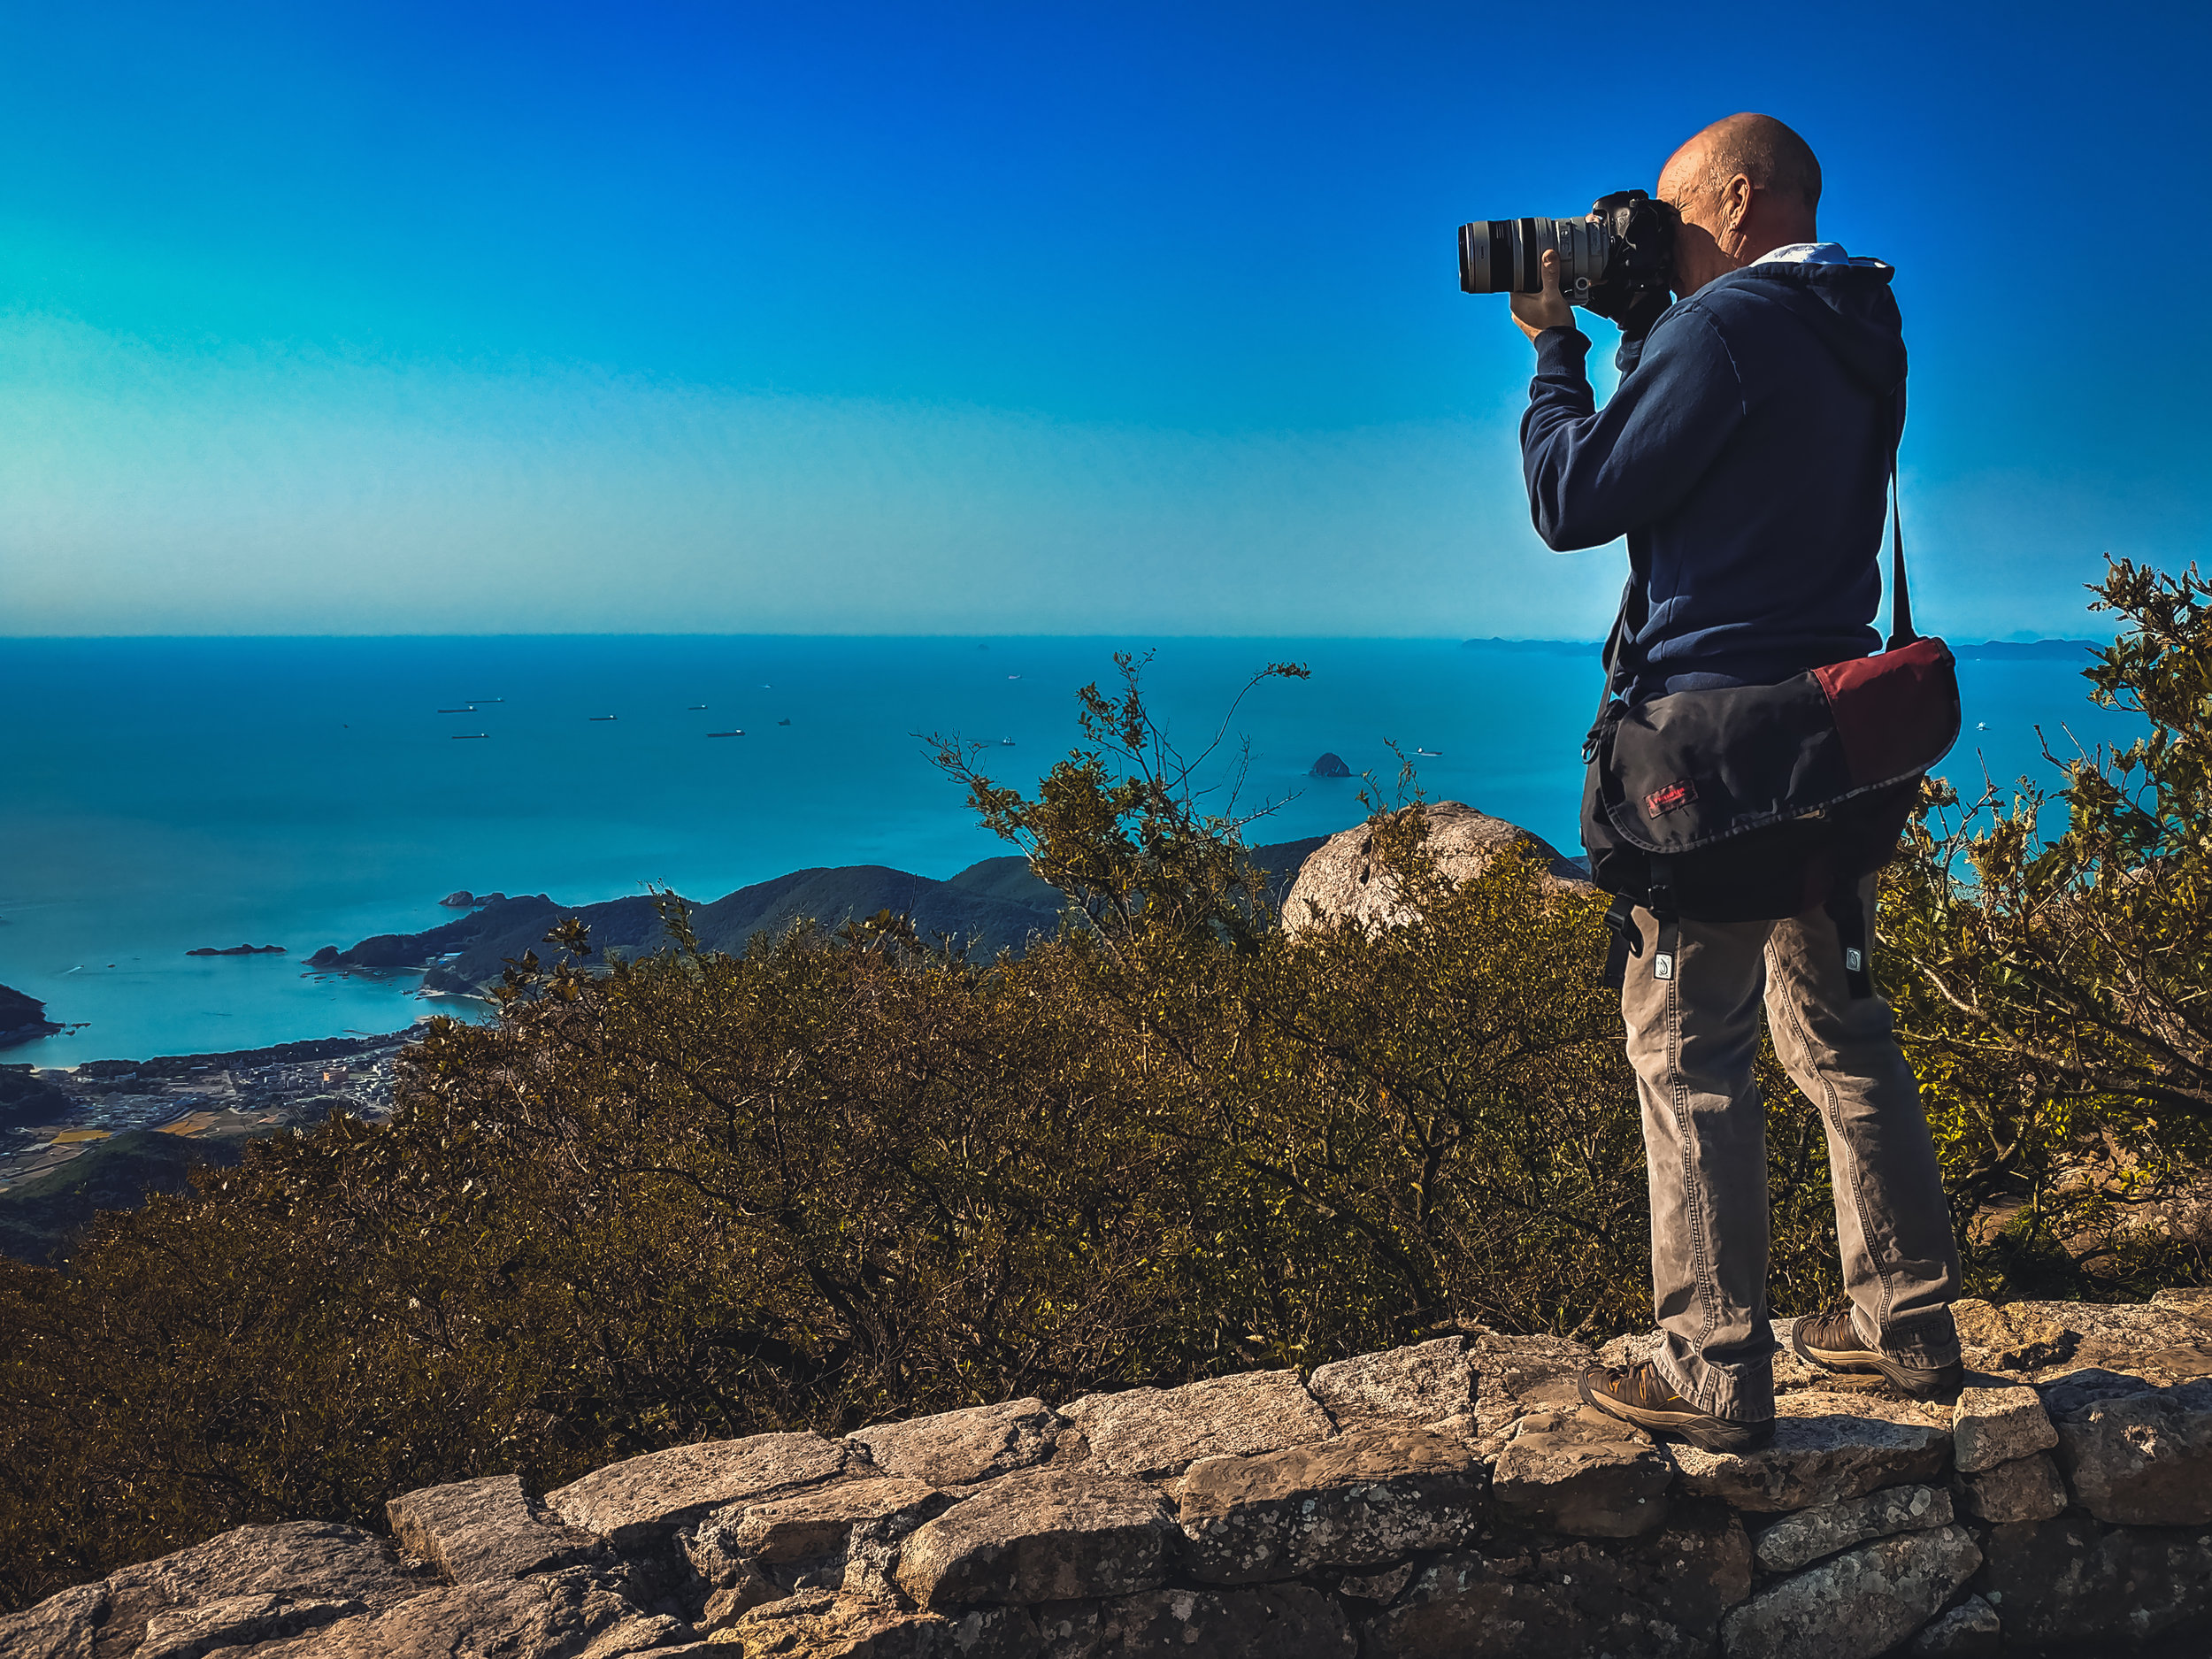 Tom photographing the South Korean seascape from atop Geumsan Mountain at a Buddhist Temple known as Boriam Hermitage. (Photo Credit - Kathryn Burns Oliver, 2018)